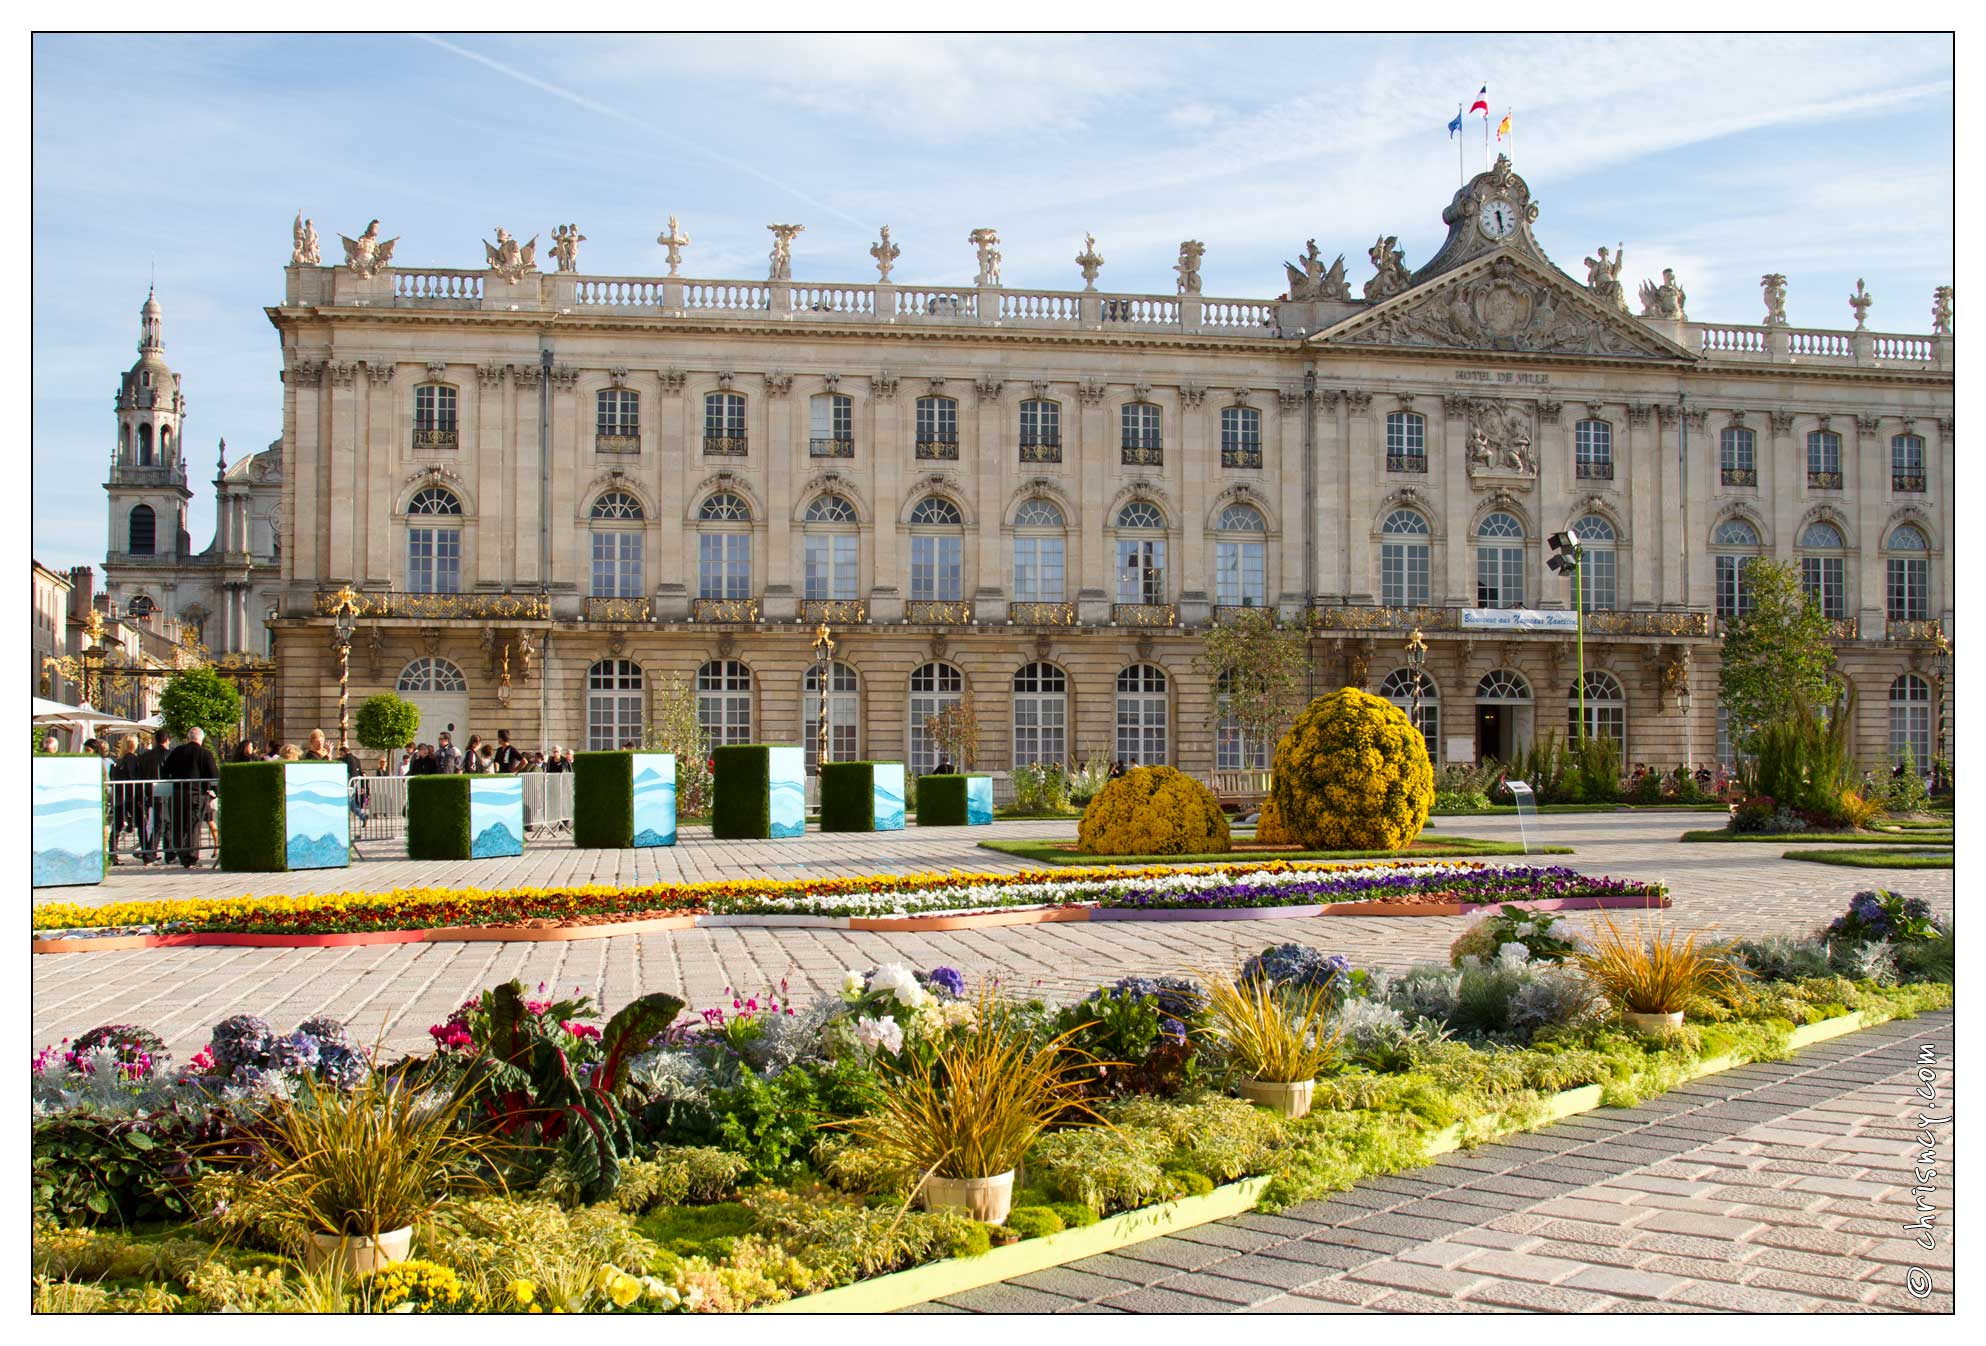 20101002-03_8248-Nancy_Place_Stanislas_ephemere.jpg